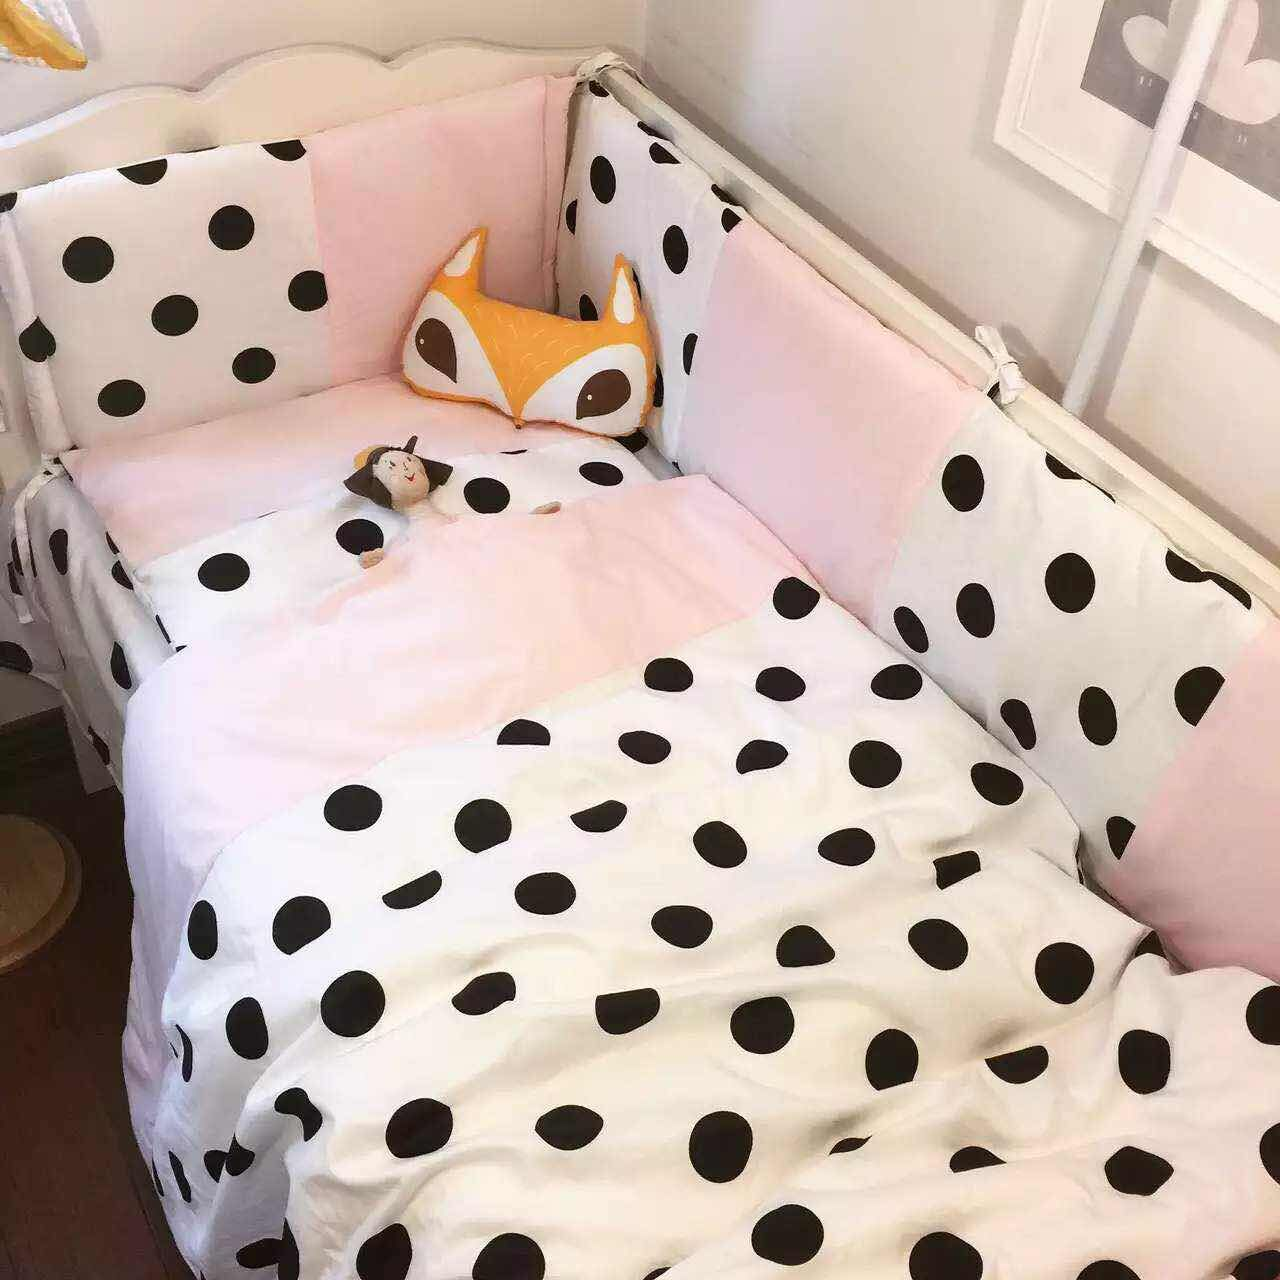 Polka dot bed spreads - 3cps Set 100 Cotton Hot Baby Bedding Set Include Pillowcase Flat Sheet Quilt Cover Pink Blue And Polka Dot